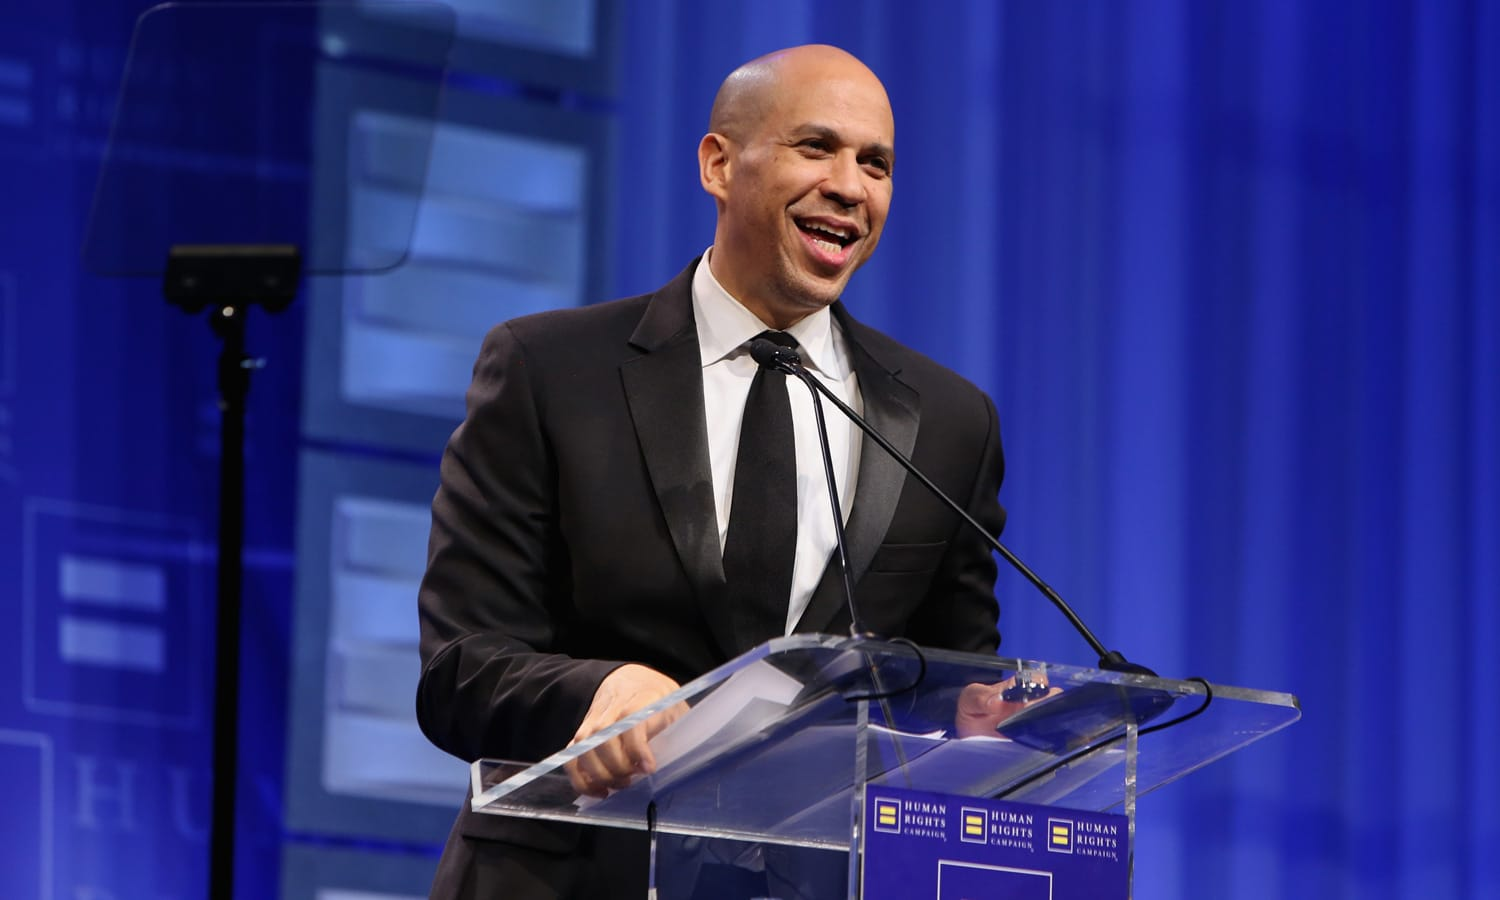 Cory Booker: If Marijuana Is Essential Business, Legalize It Federally - The Fresh Toast